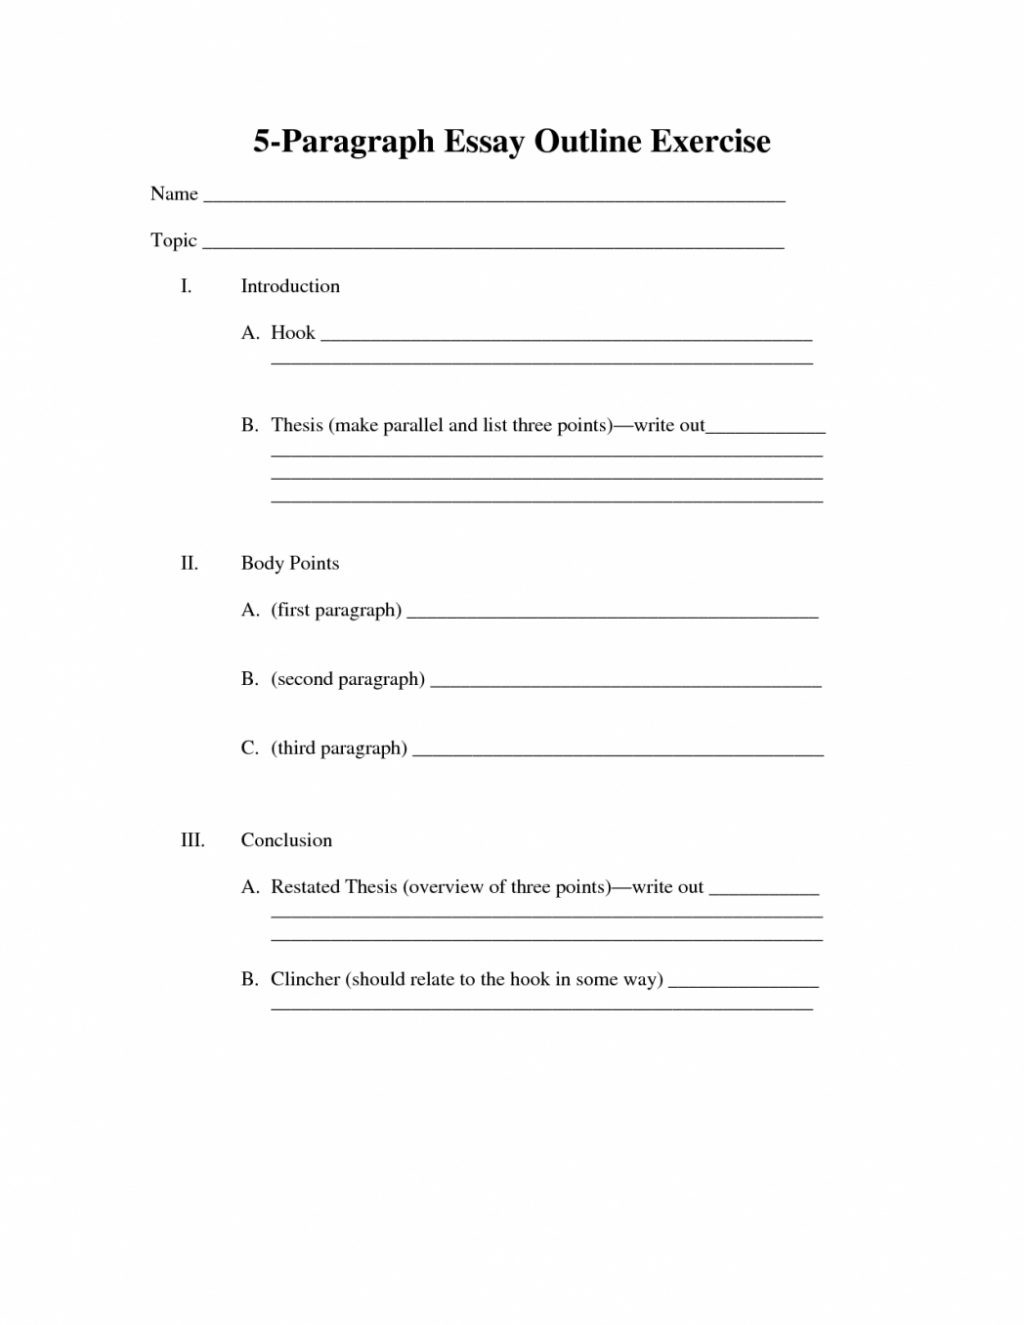 4th Grade Essay Writing Worksheets Outline for Paragraph Essay Writing Five oracleboss within